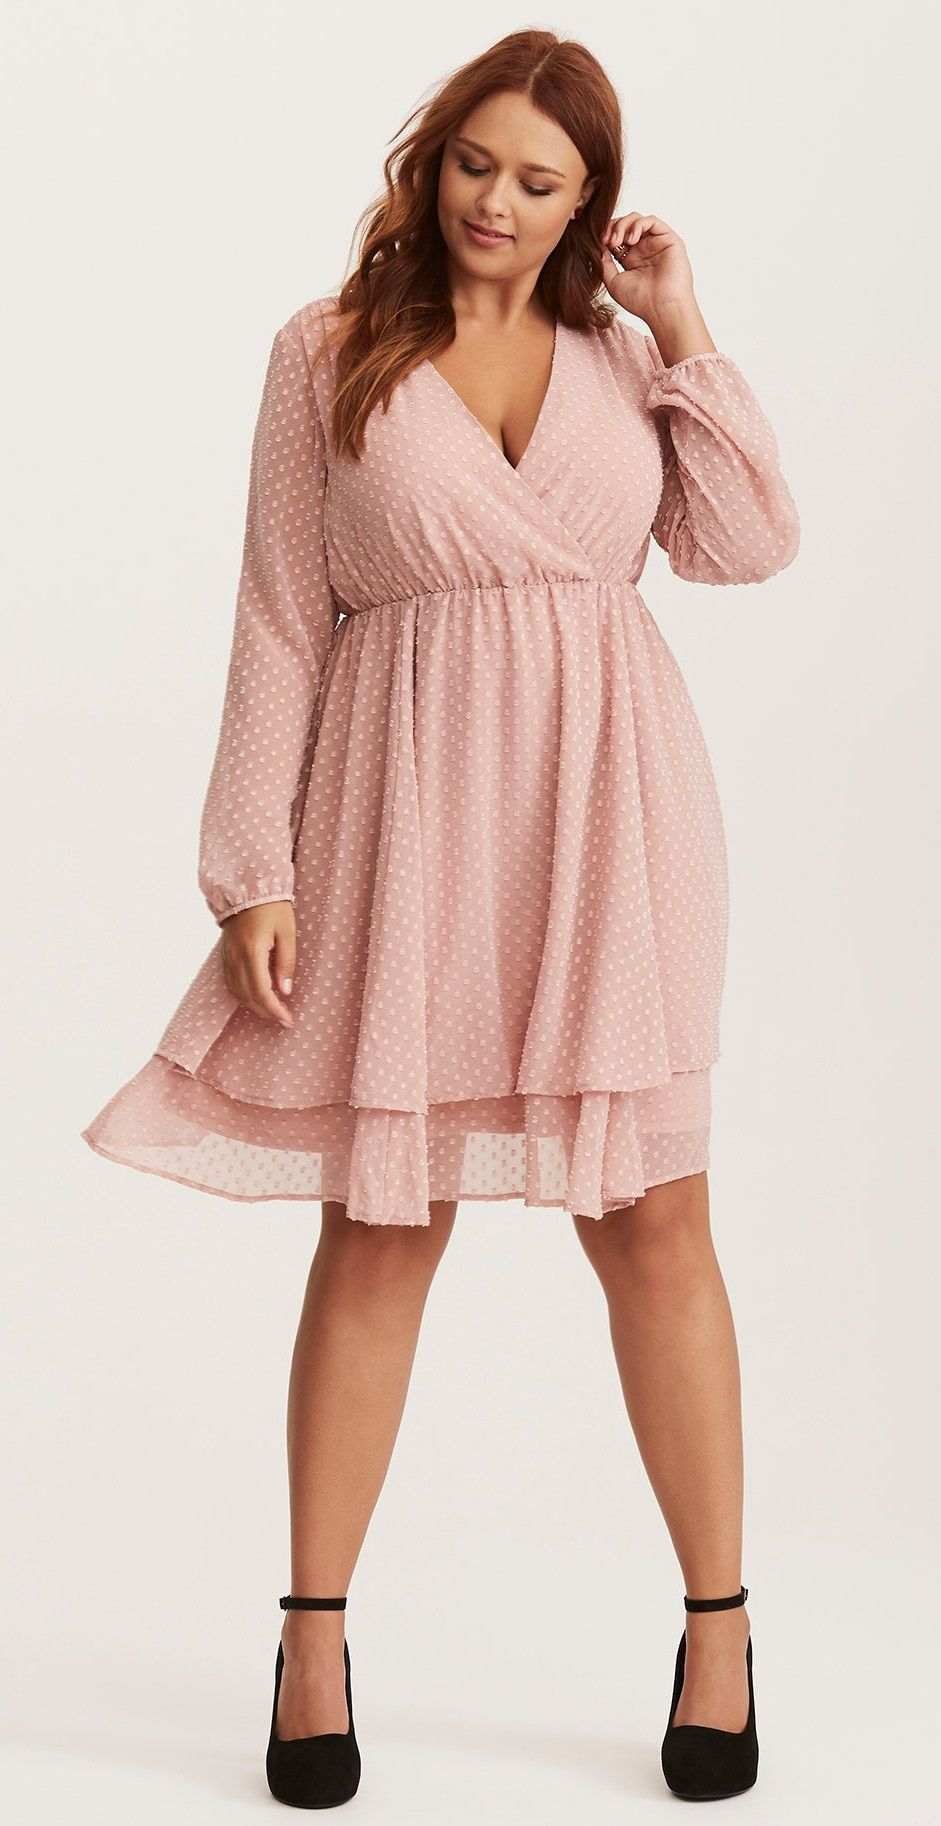 Plus Size Skater Dress | Plus Size Party Dress | Plus sinze elegant ...